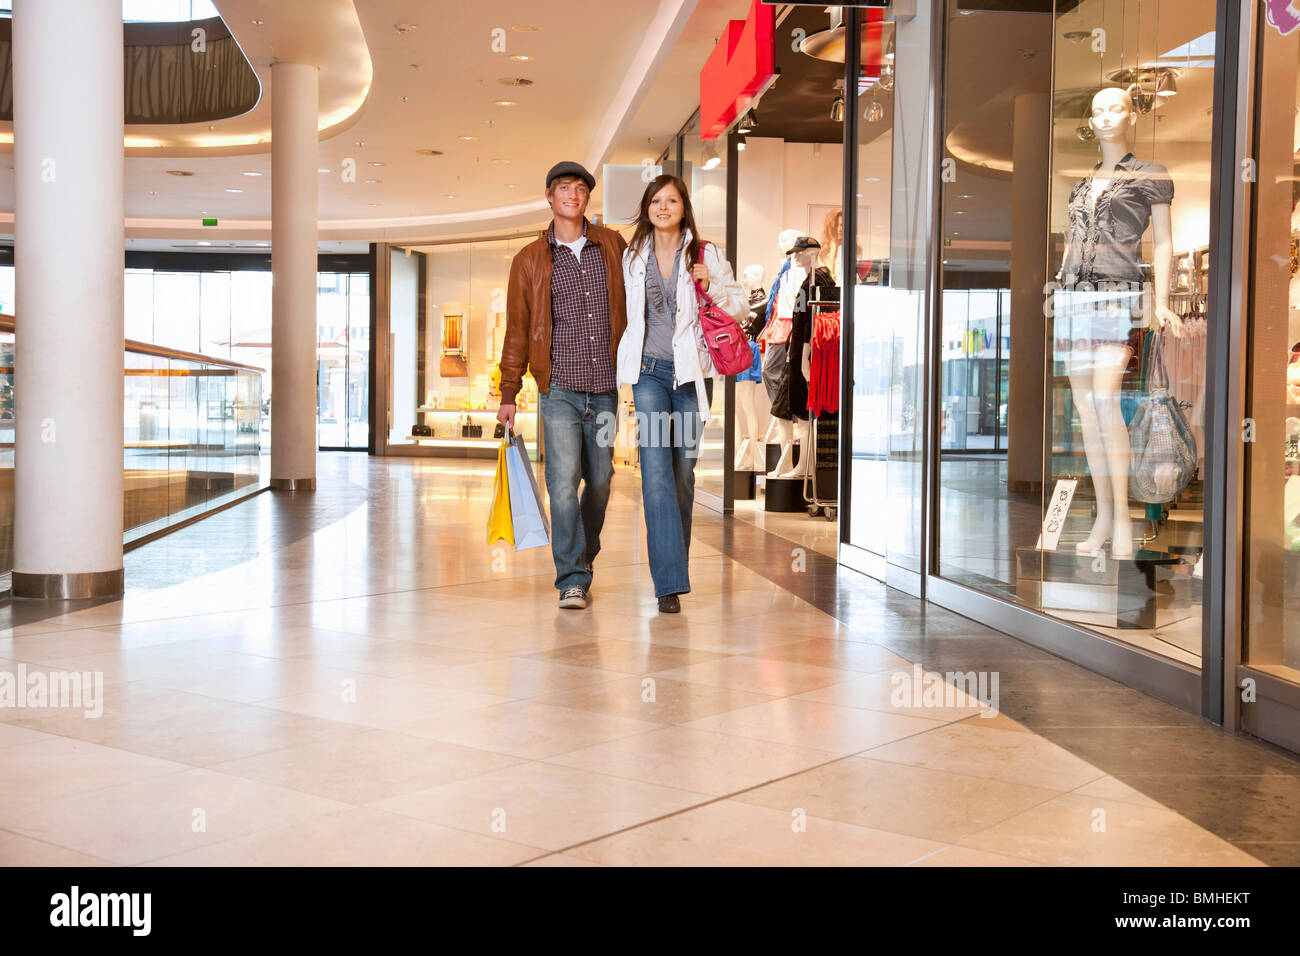 Young couple walking in shopping mall - Stock Image